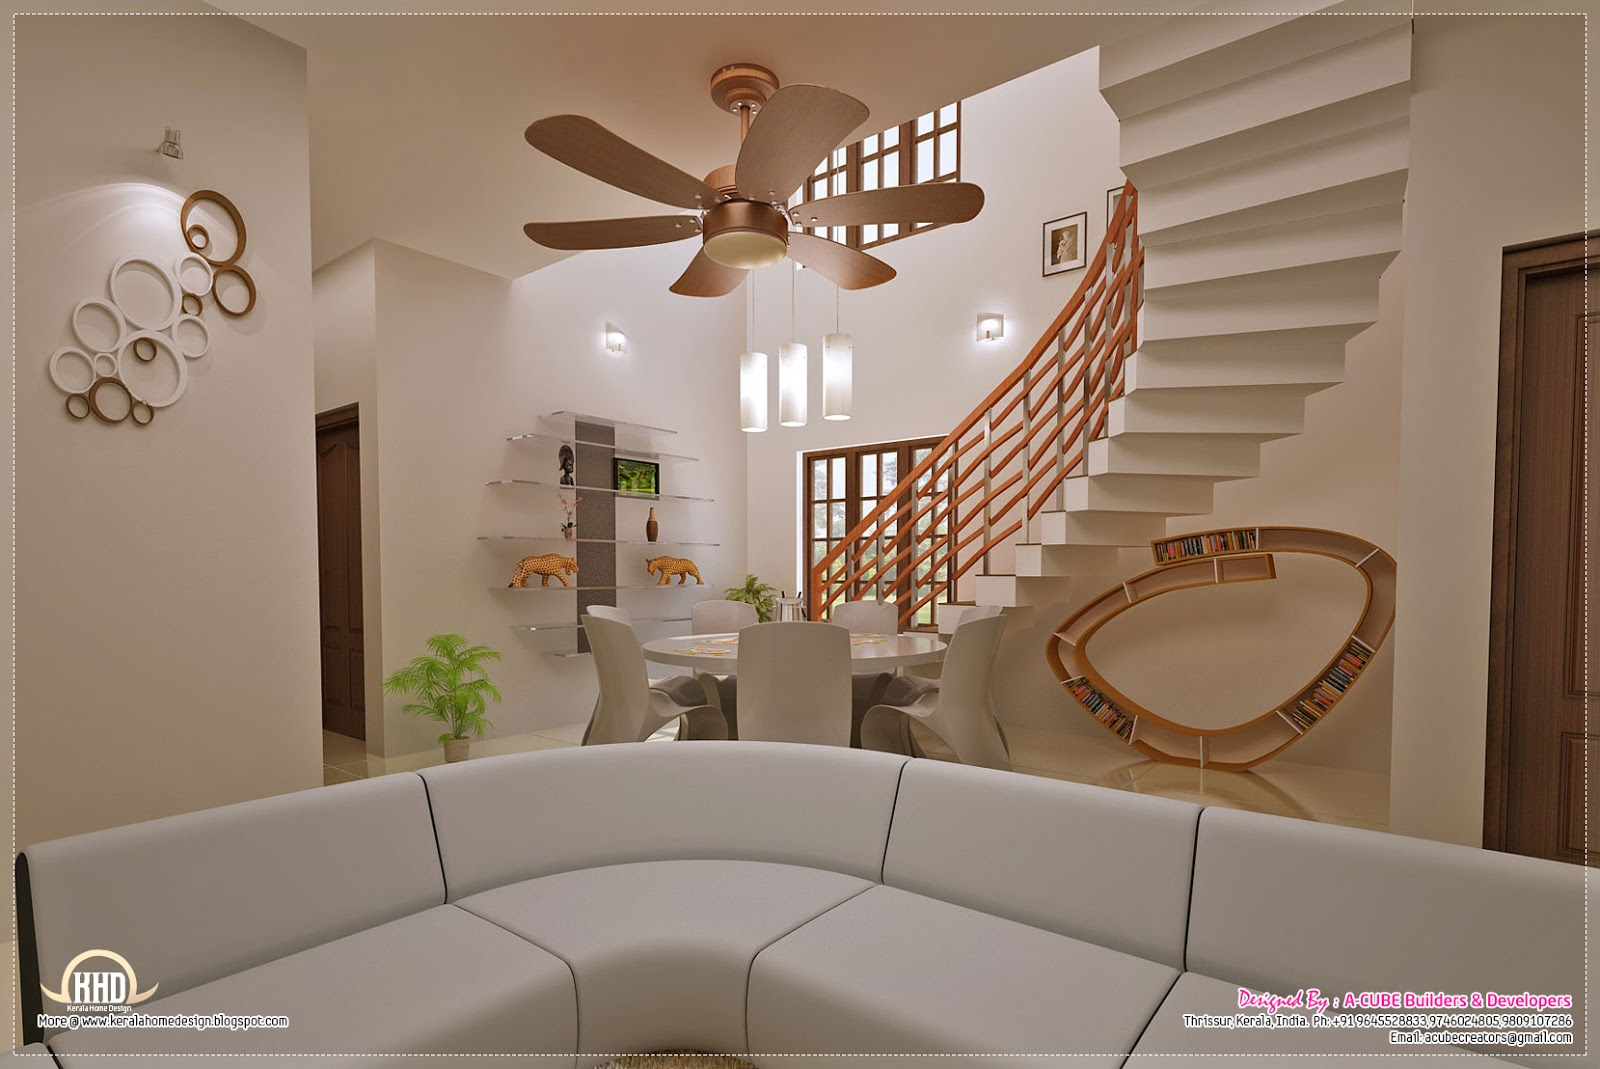 Awesome interior decoration ideas kerala home design and for Interior decoration living room roof